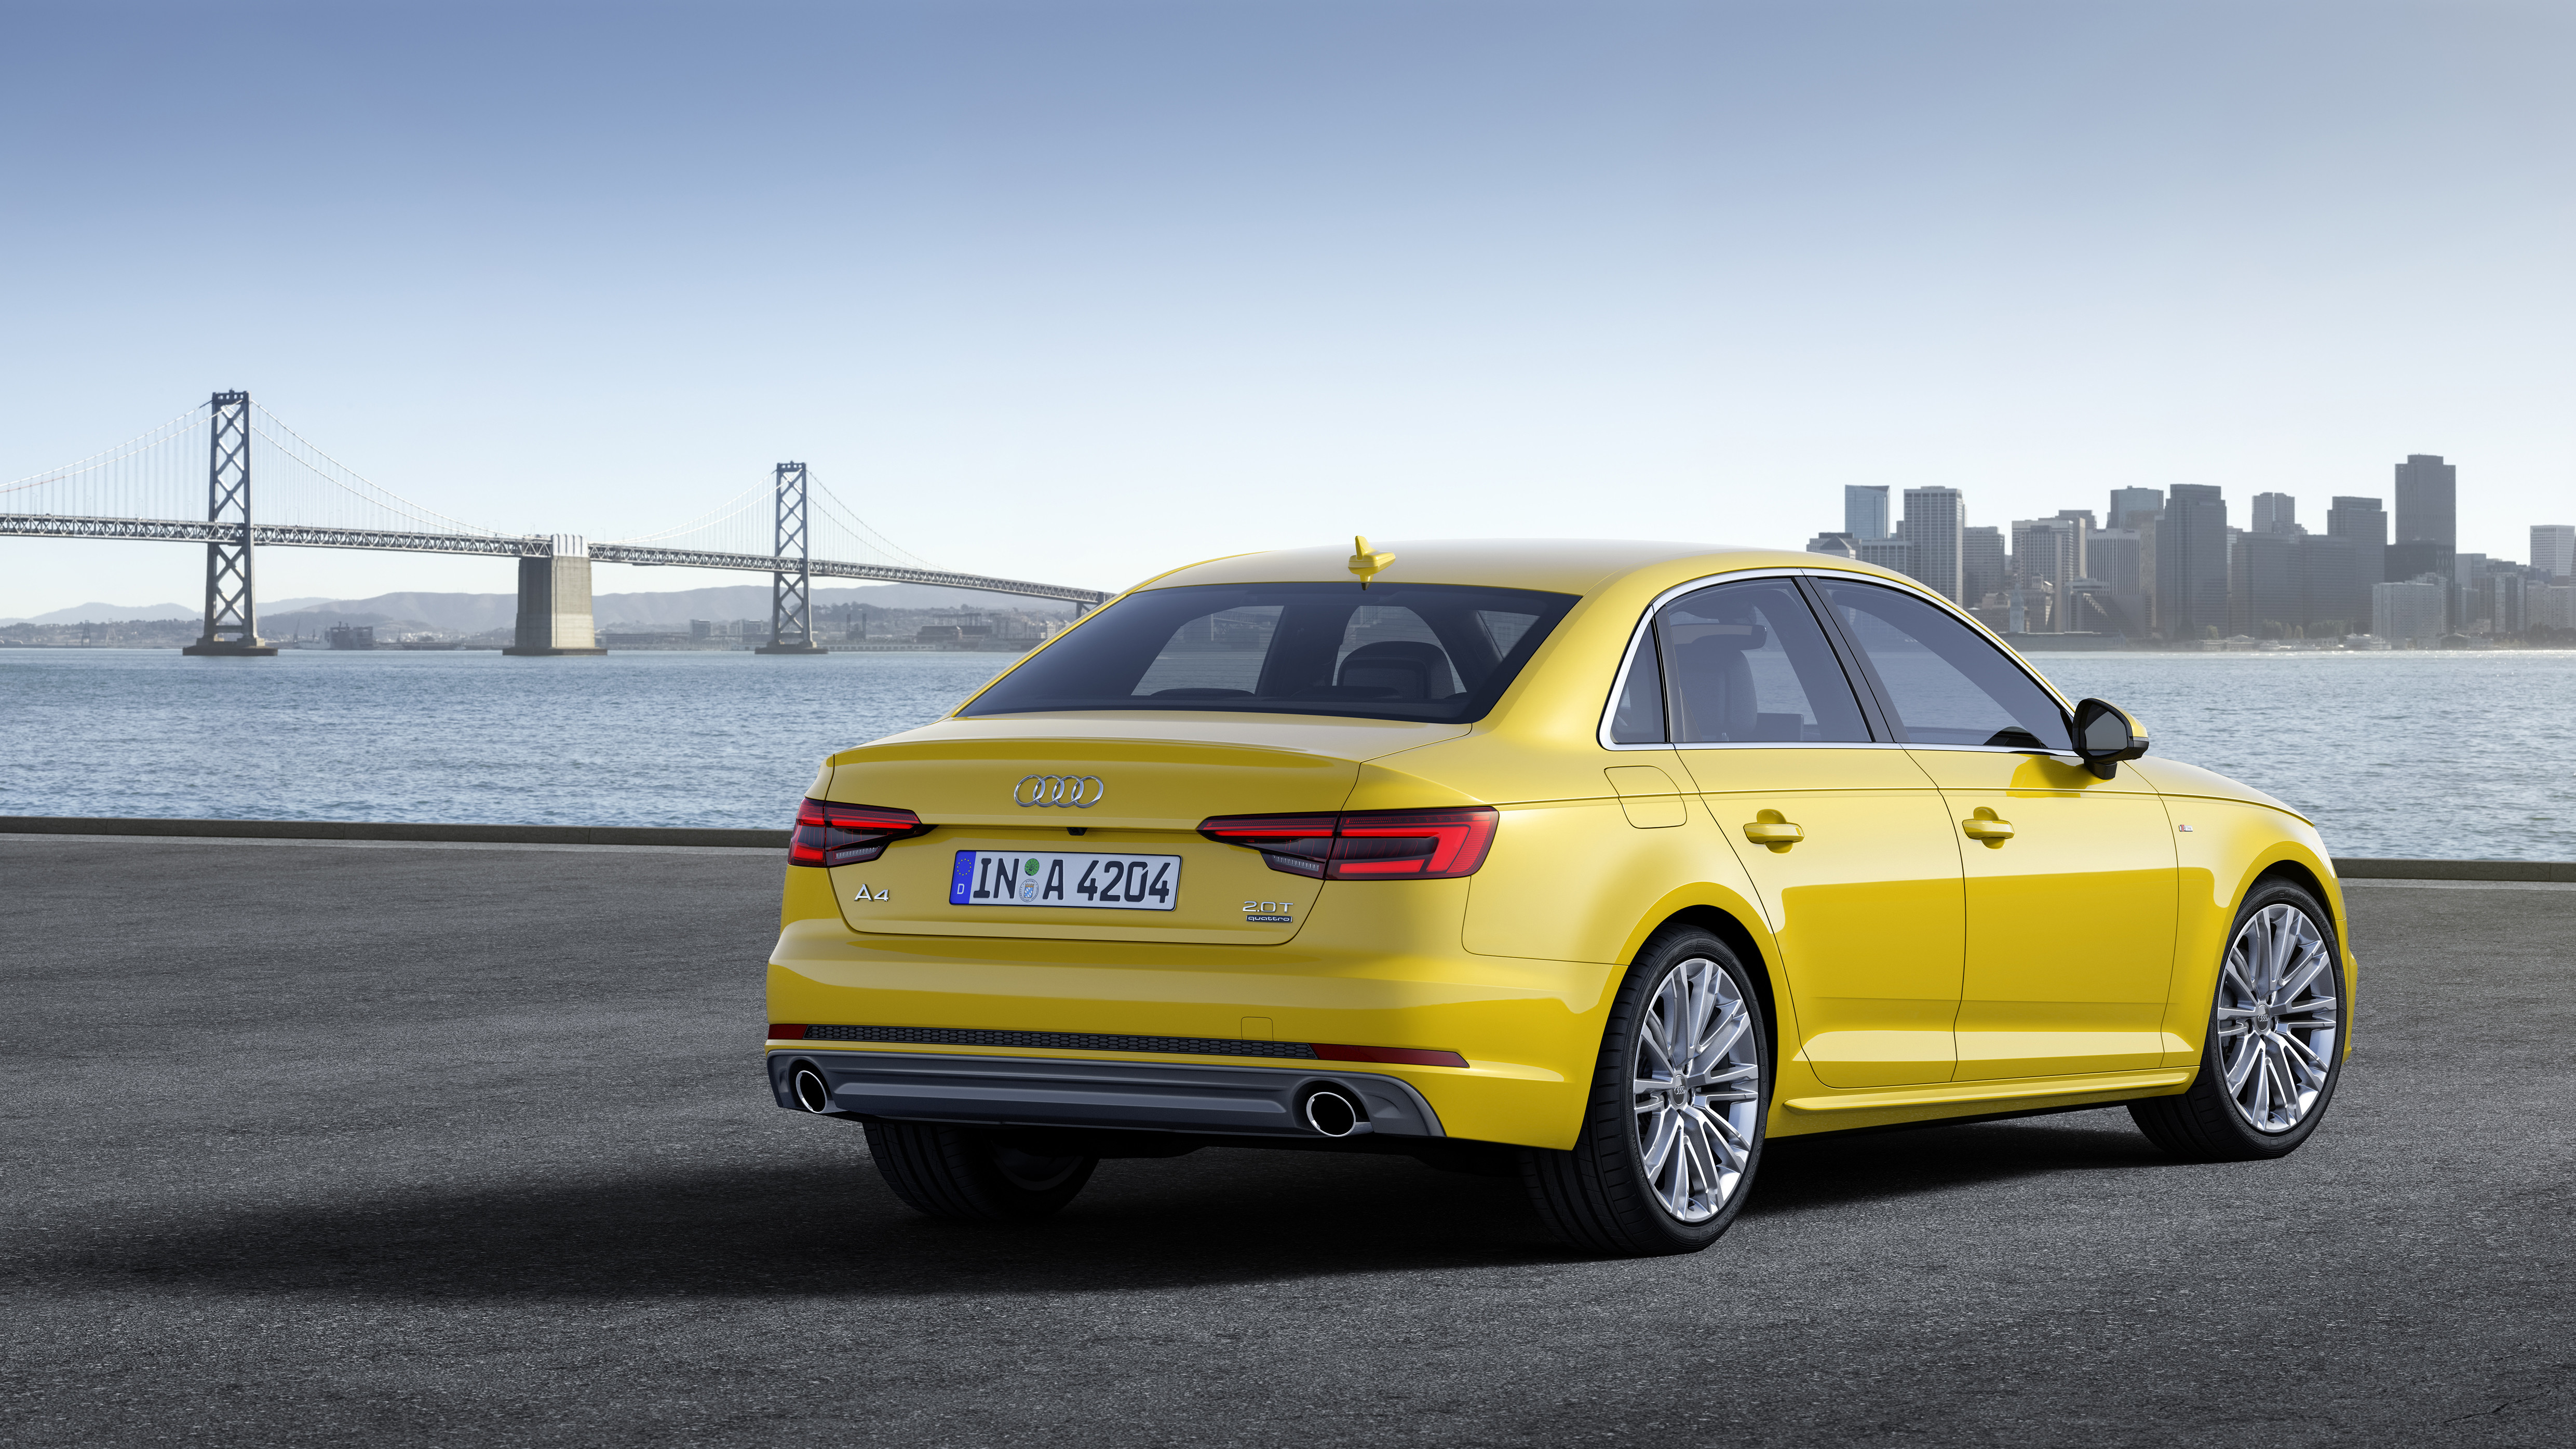 OFFICIAL Audi A Goes Bigger Lighter With Predictable - Audi official